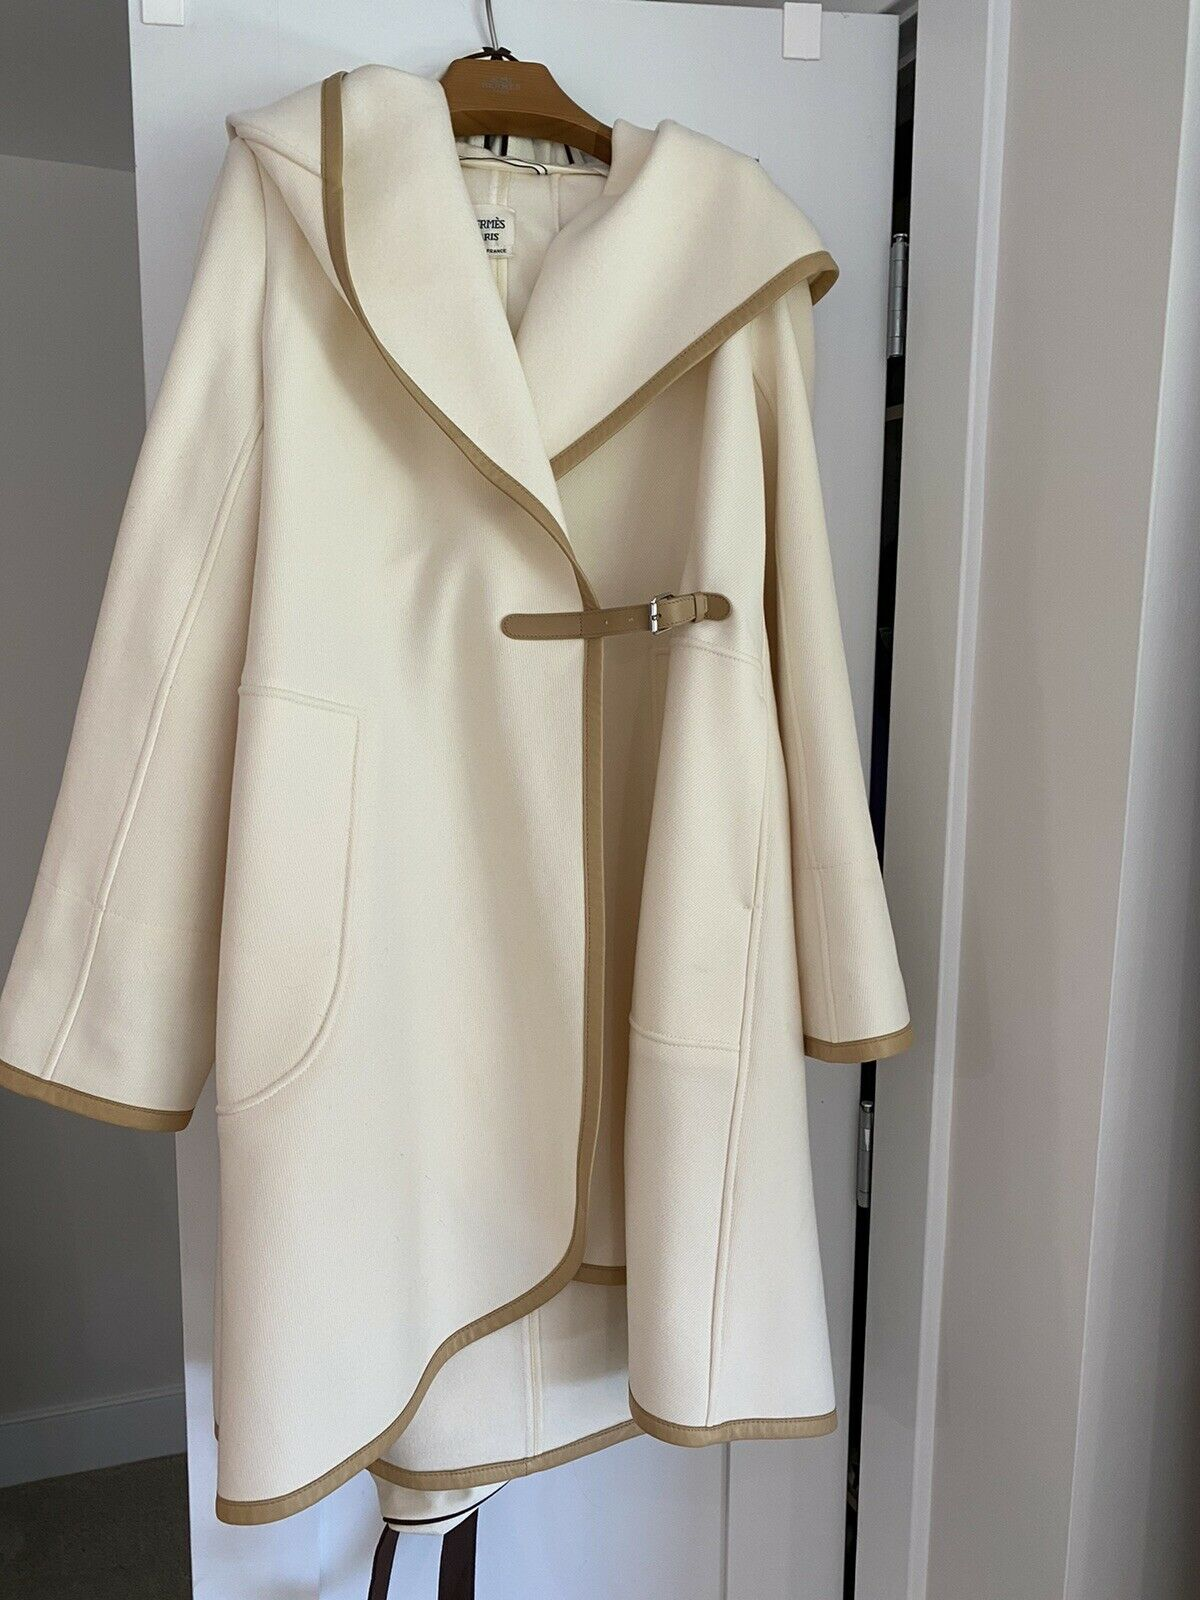 AMAZING Hermes Timeless Chic And Elegant Hooded Wool/ Cashmere Wrap Coat